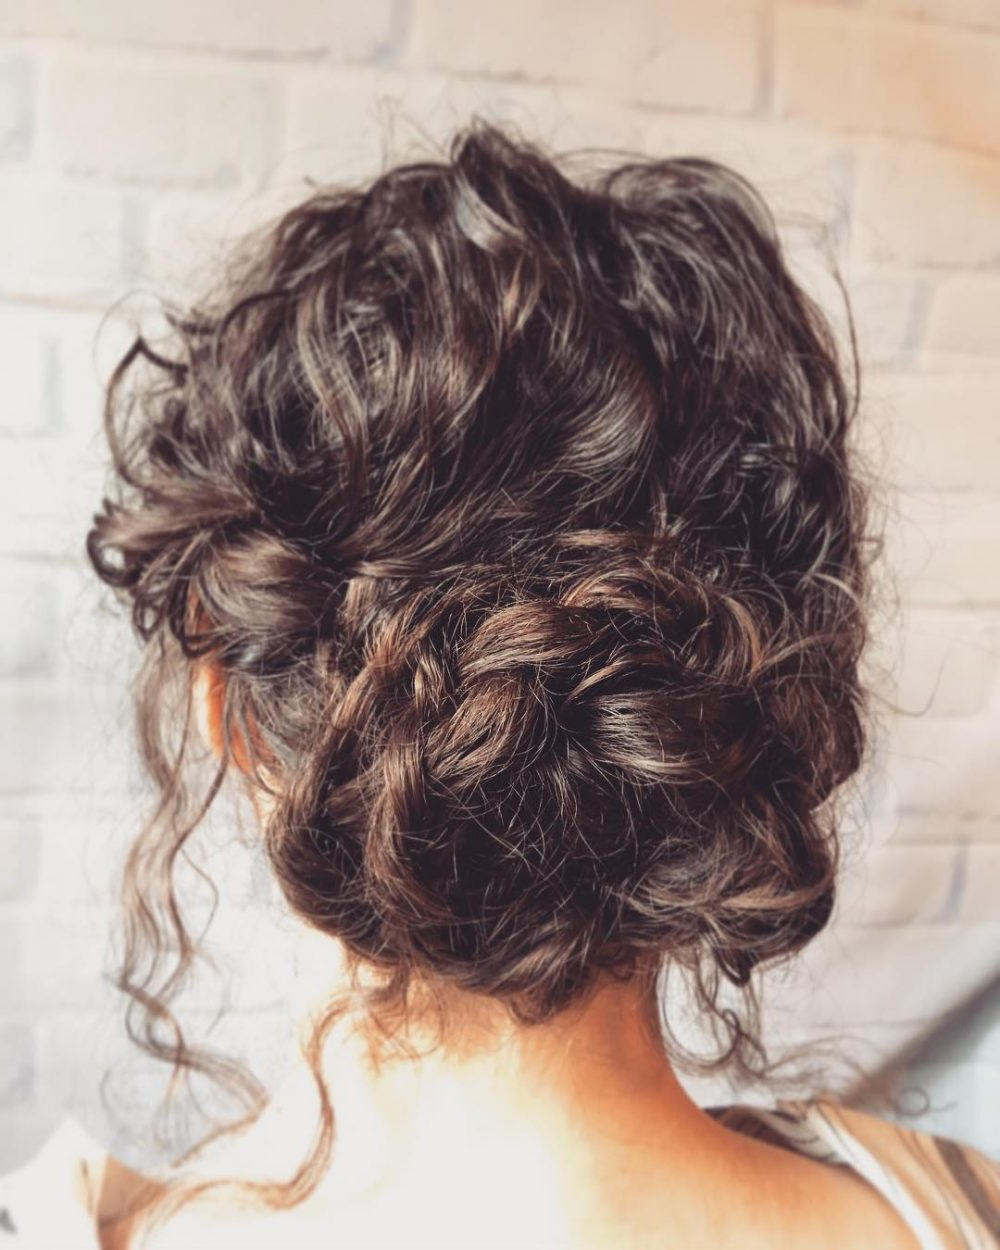 18 Stunning Curly Prom Hairstyles For 2019 – Updos, Down Do's & Braids! Throughout 2017 Easy Curled Prom Updos (View 2 of 20)